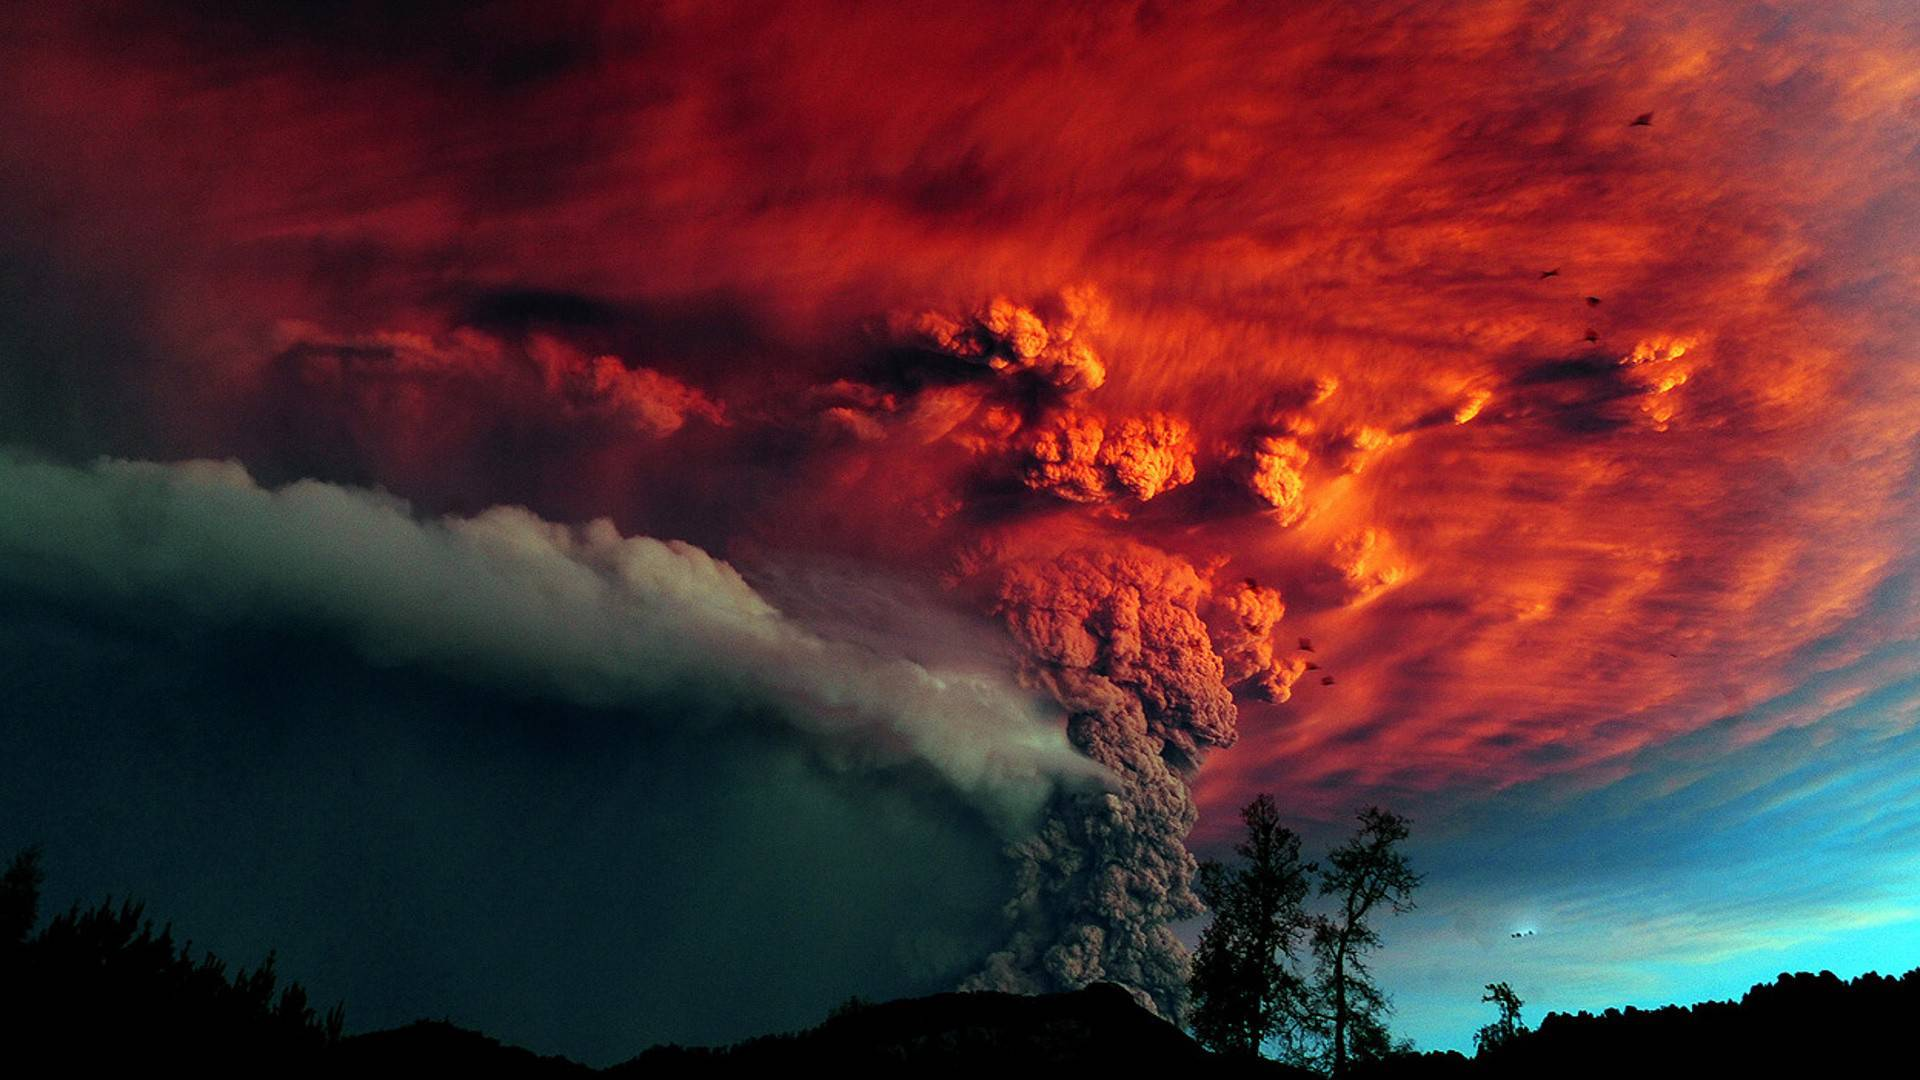 volcano eruption wallpaper hd - photo #31